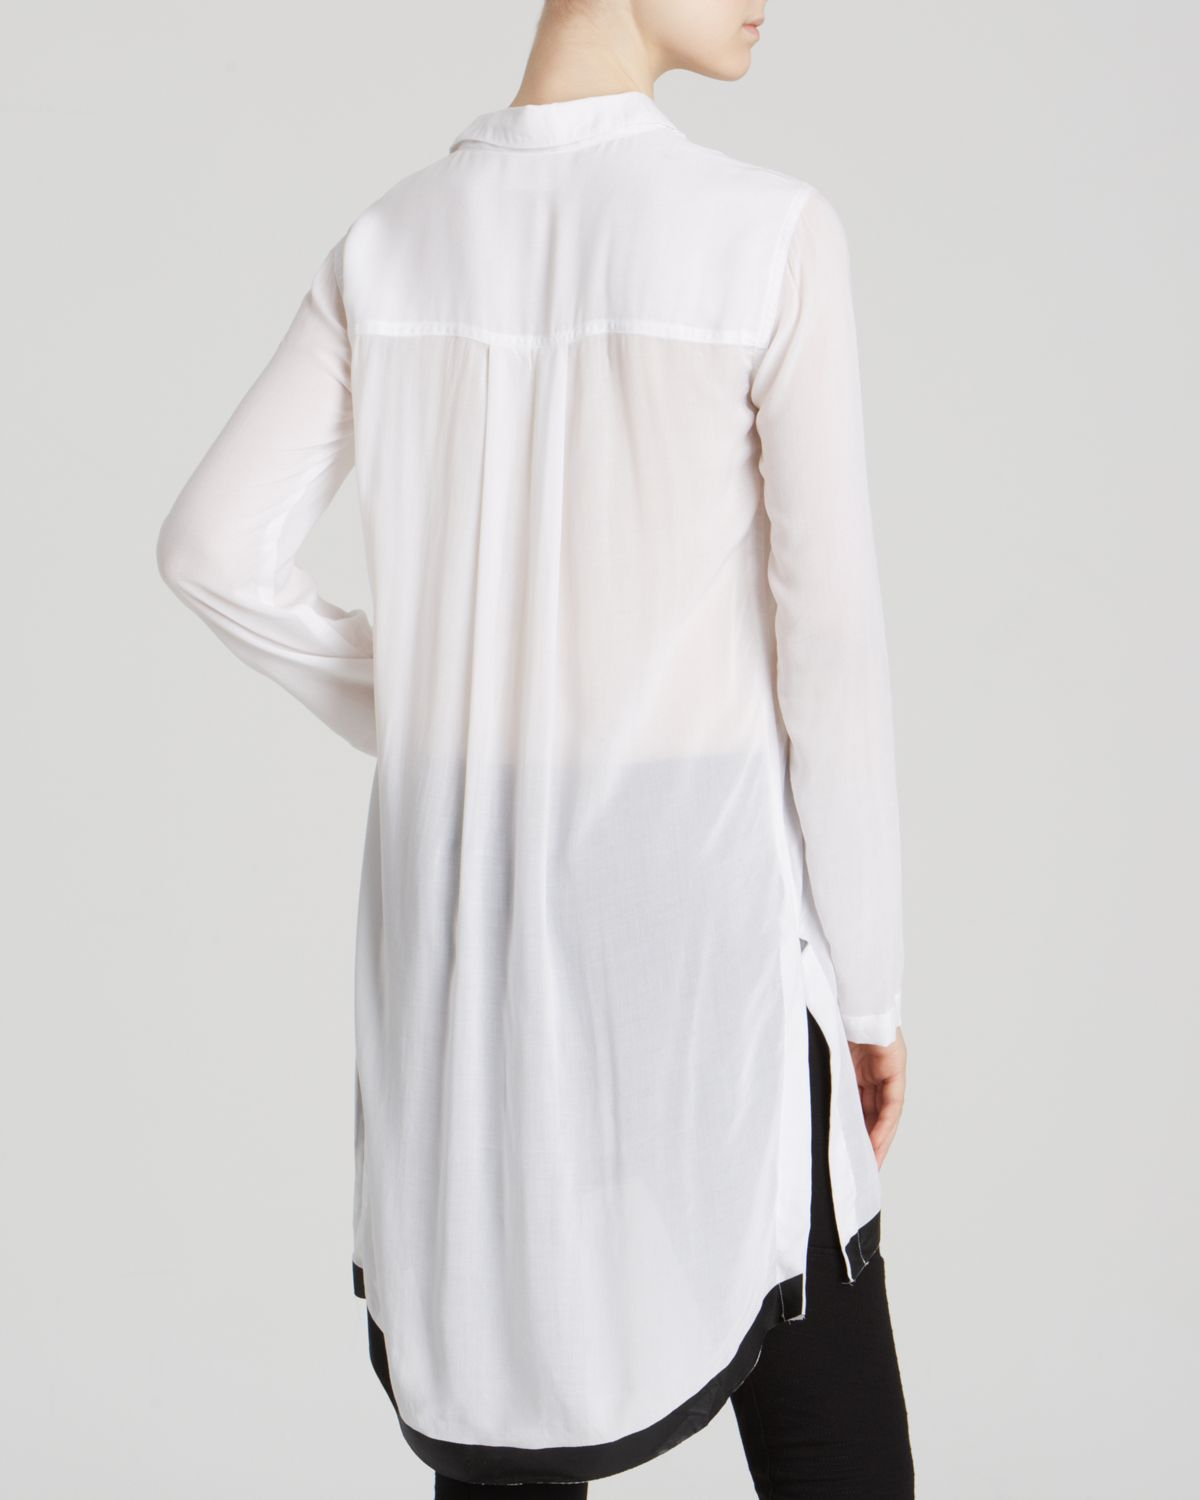 Dkny Long Sleeve Tunic Blouse in White | Lyst